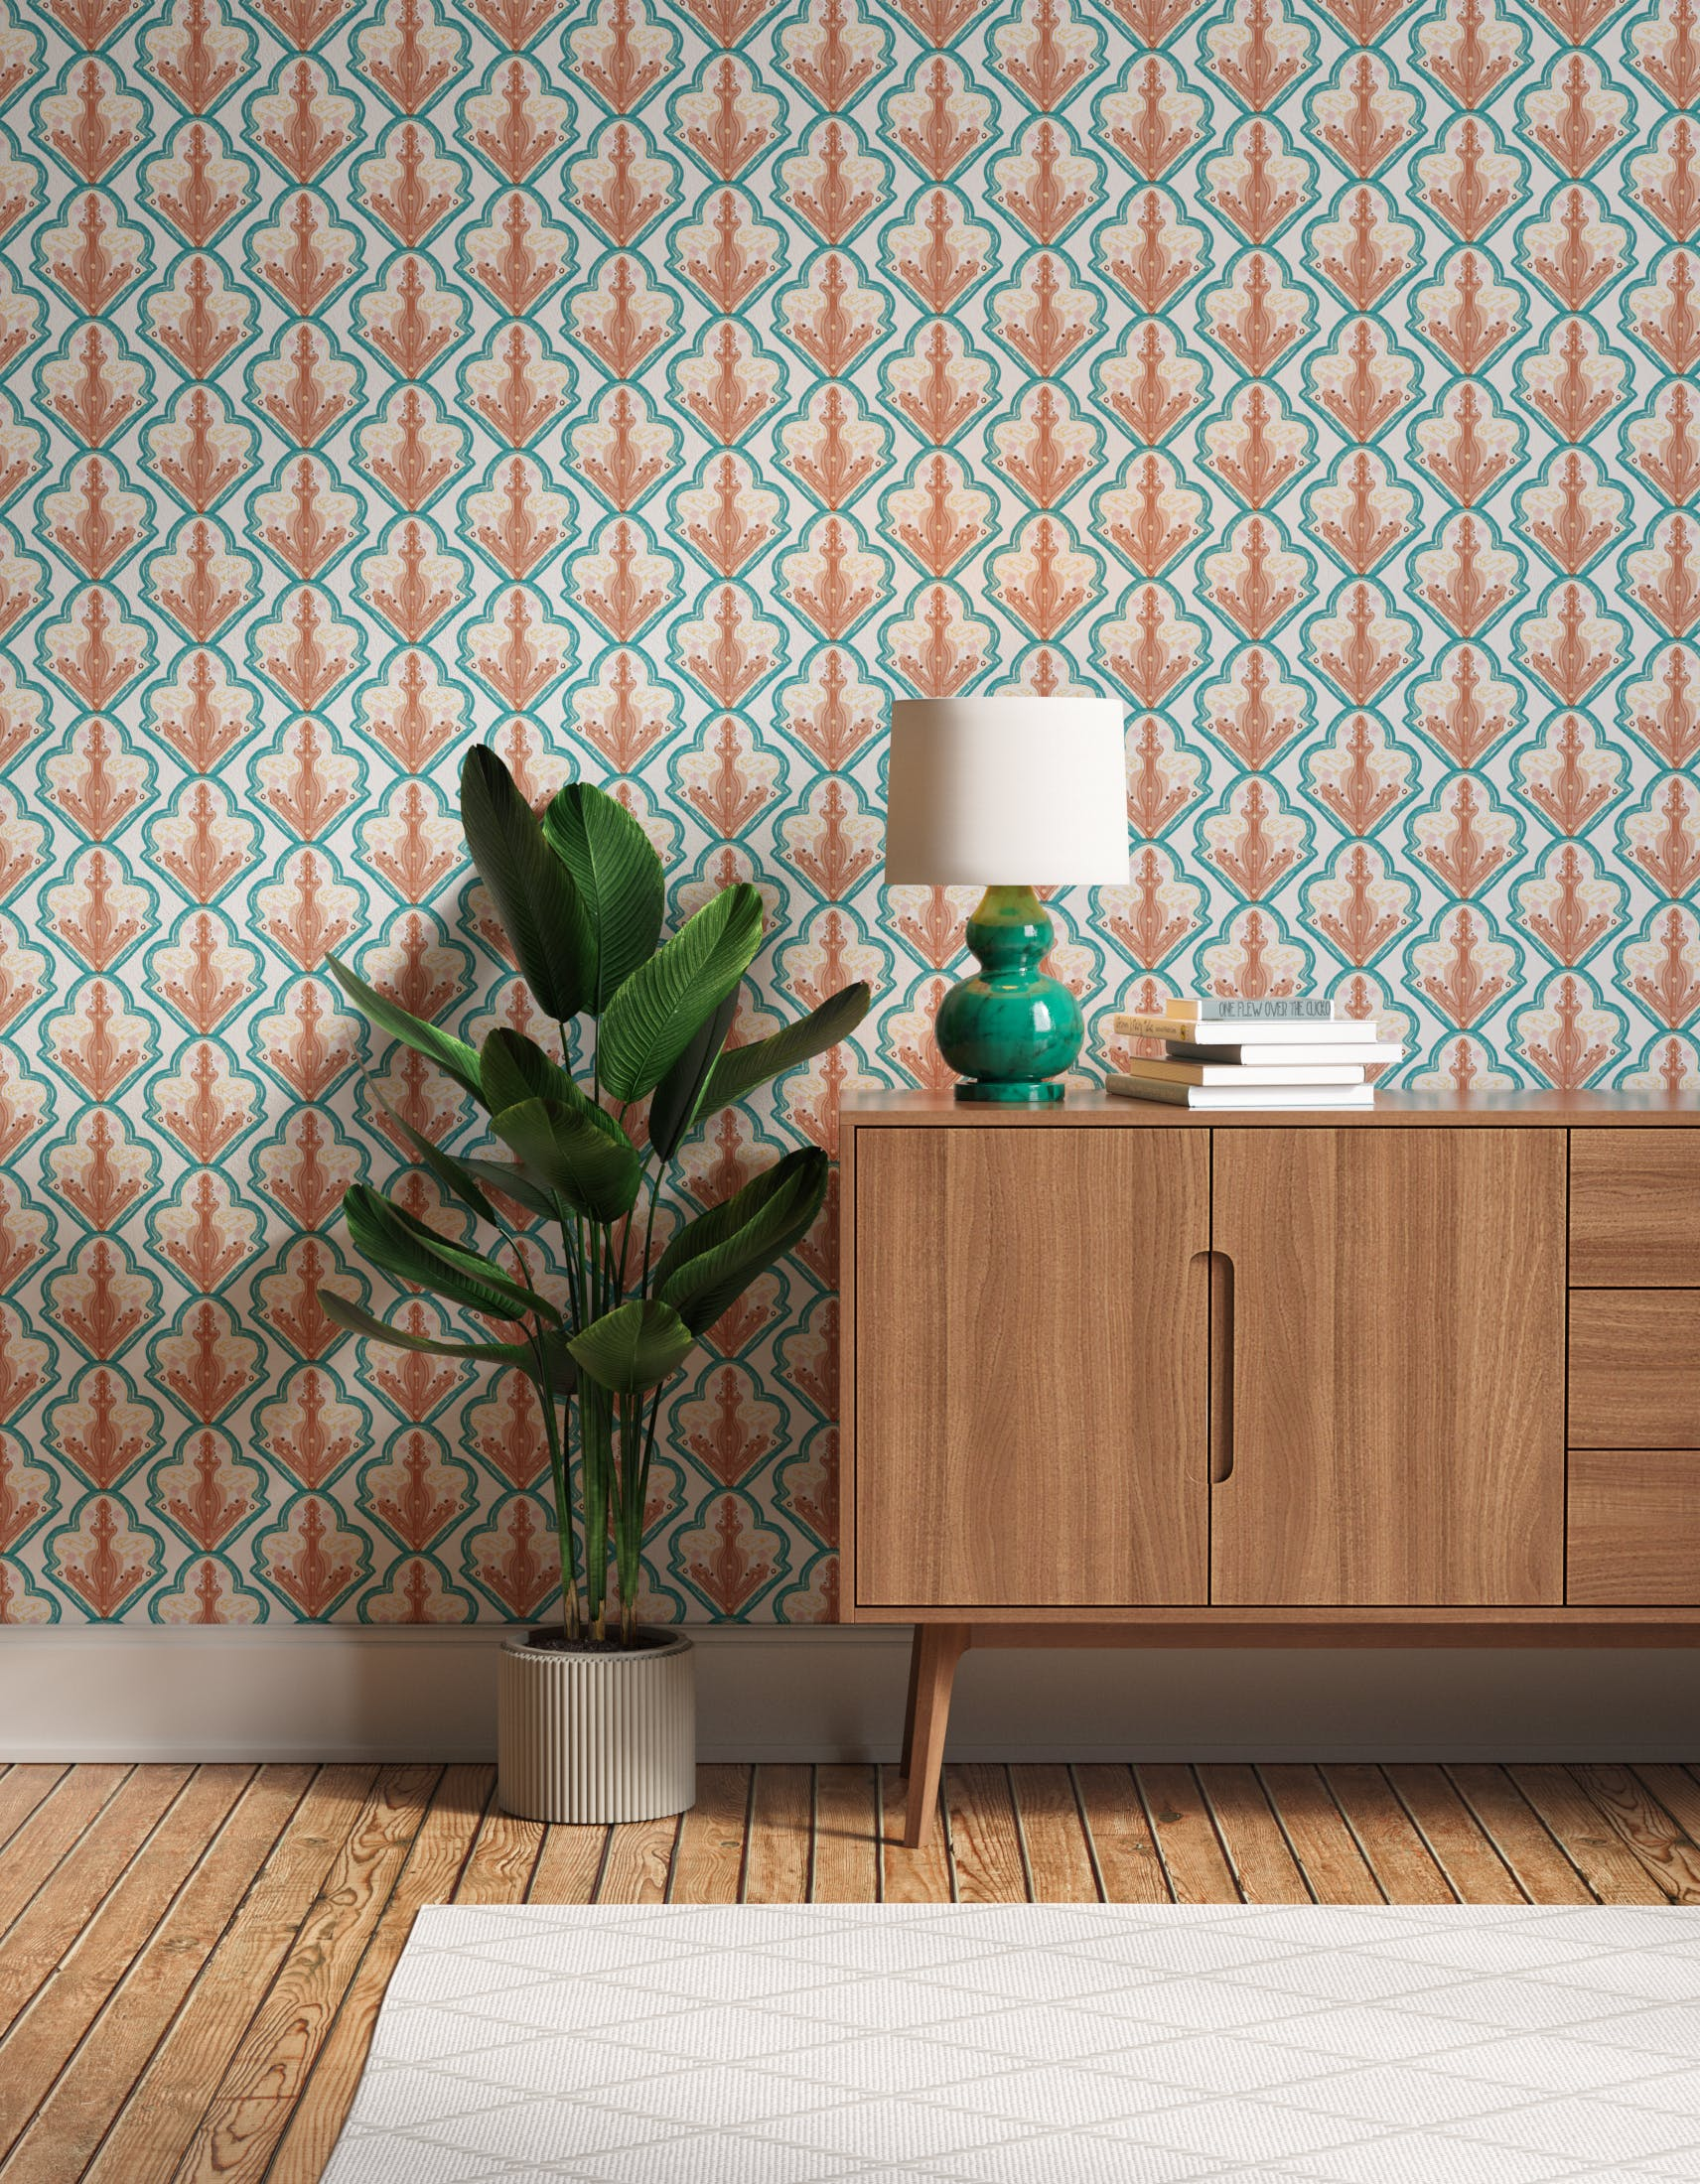 Hallway decorated with Lick x Lottie McDowell Travelling Tiles 01 mosaic wallpaper